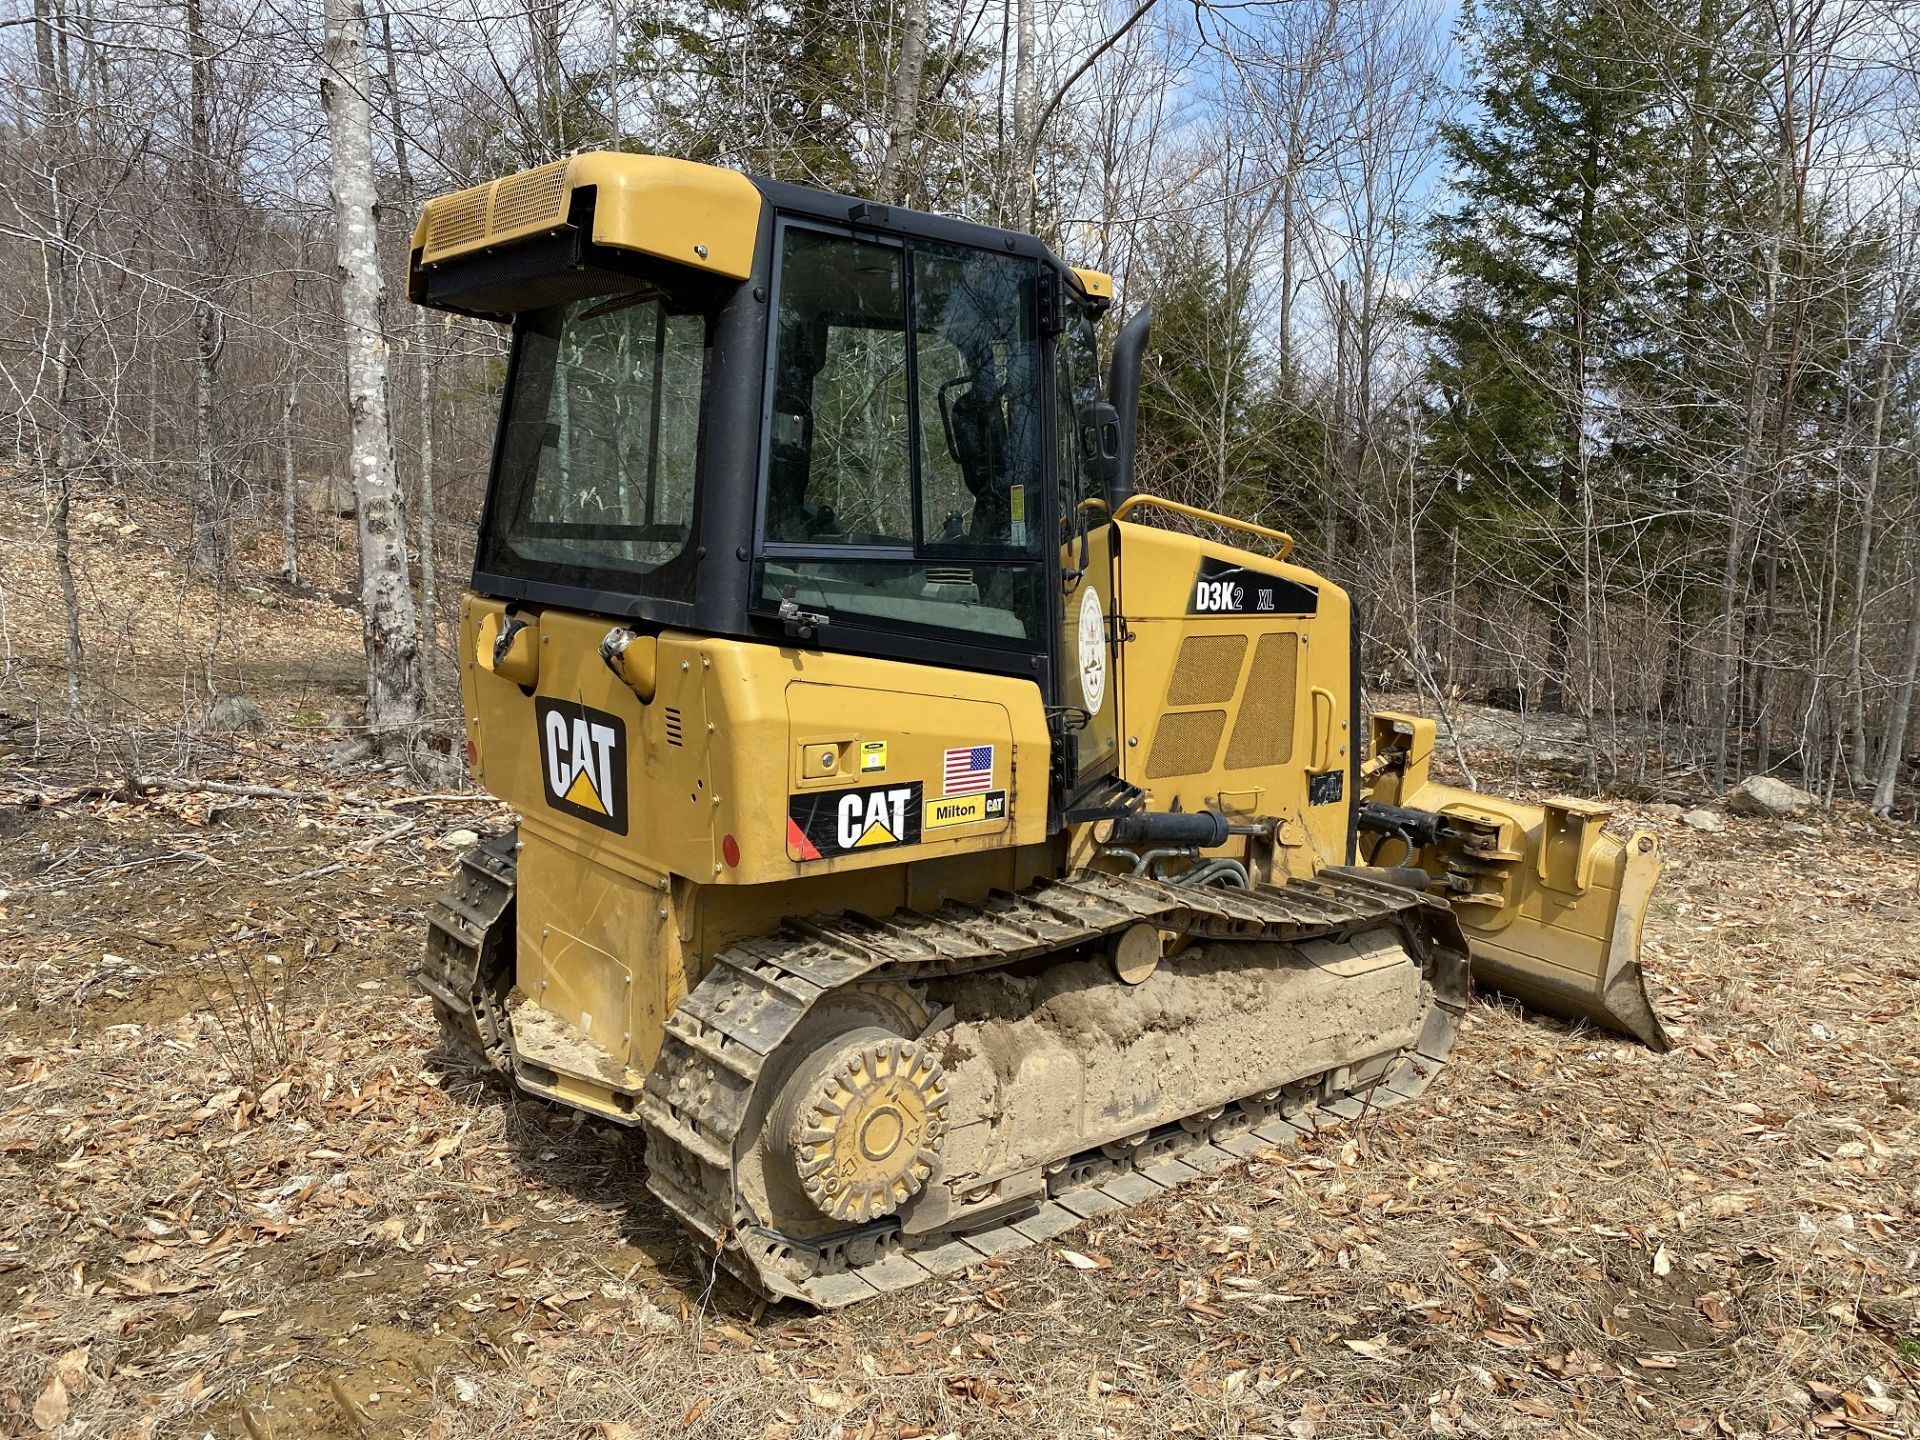 2014 Caterpillar Track Dozer #D3K2XL w/ 8' Plow, CAT 4.4 ACE RT Diesel Engine, HRS: 1926, PIN#: - Image 2 of 9